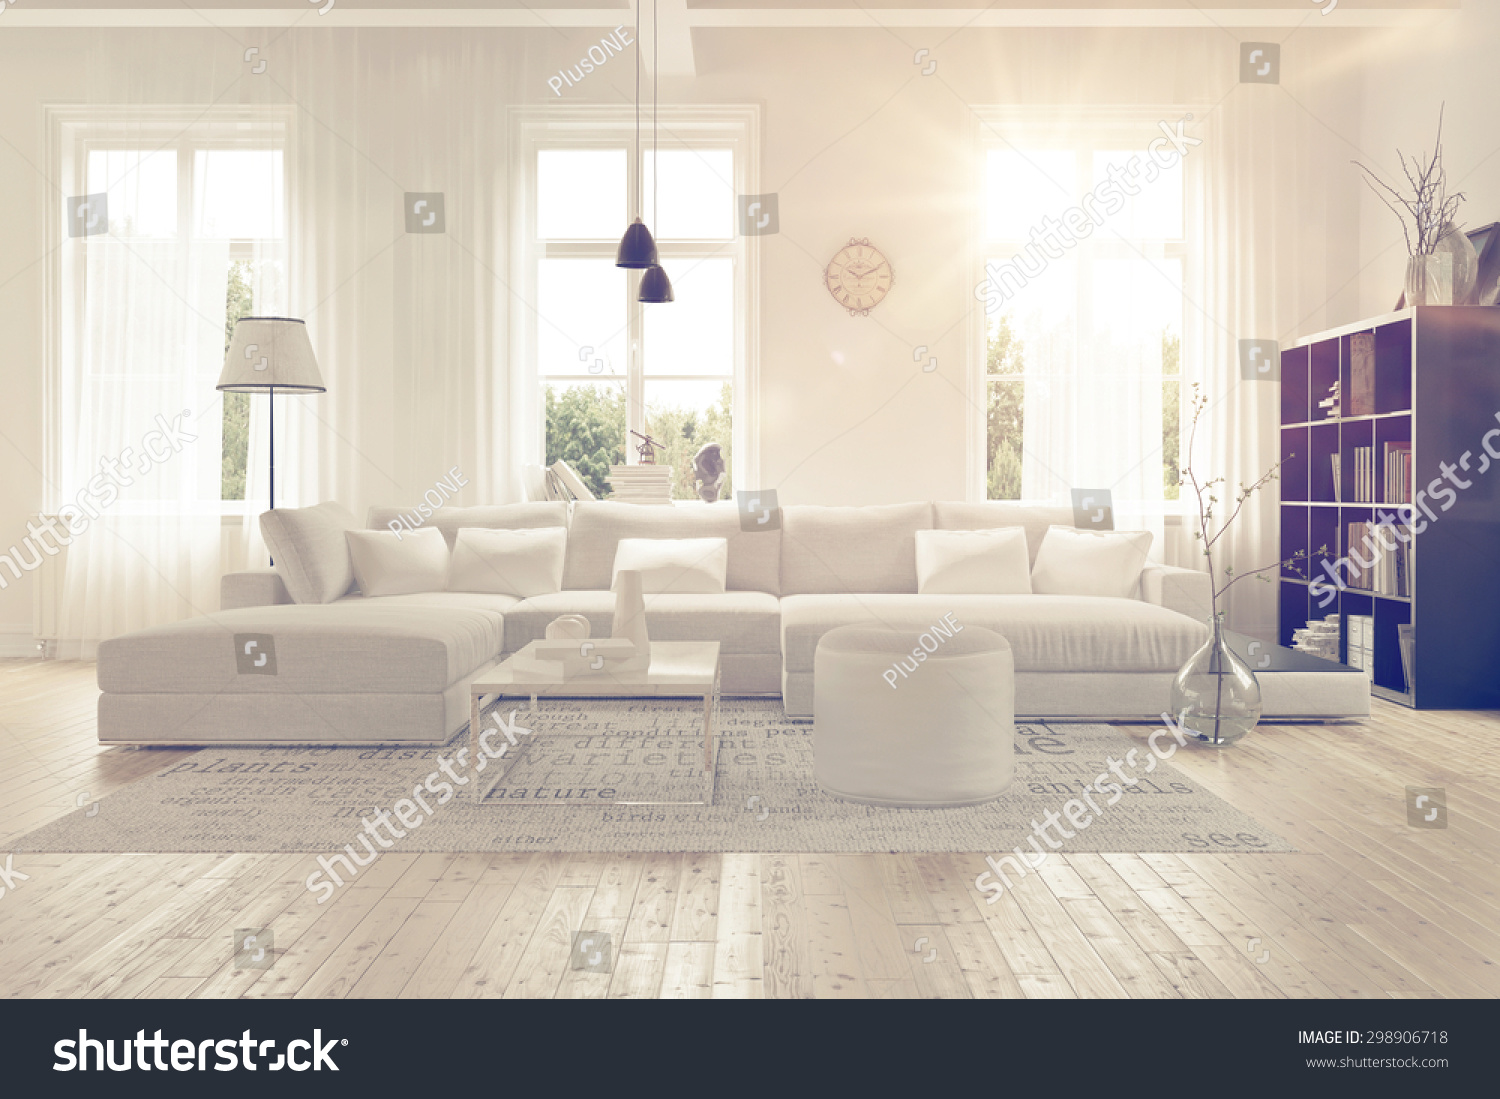 stock-photo-modern-spacious-lounge-or-living-room-interior-with ...